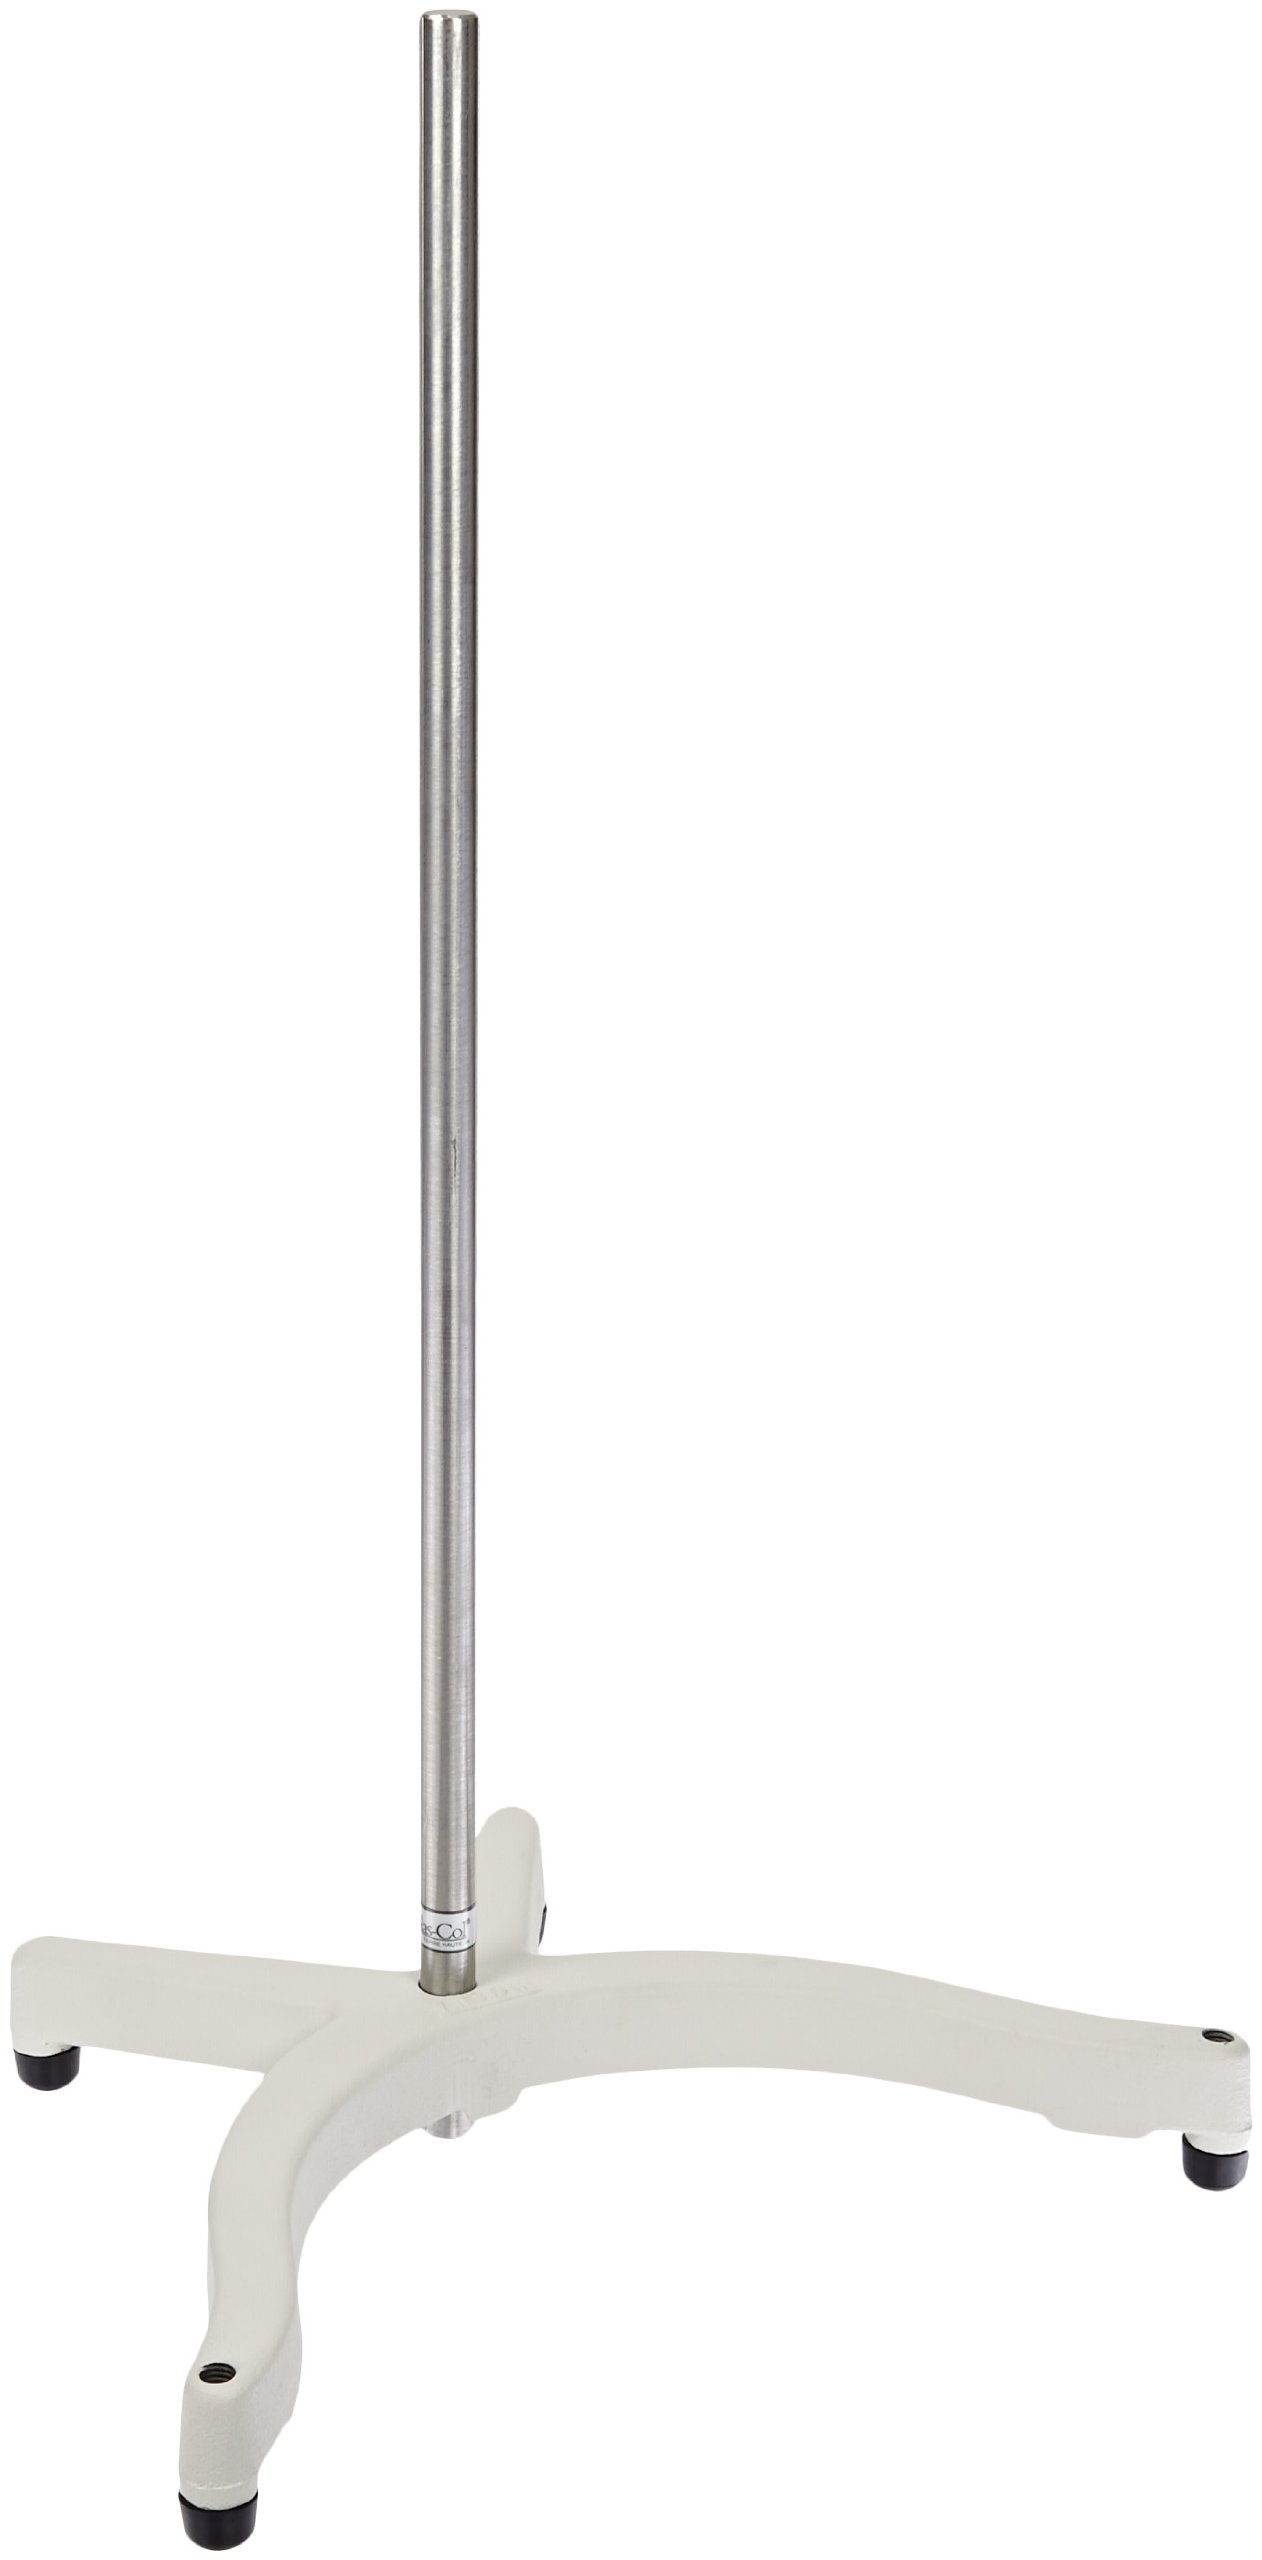 Glas-Col 099D A130150 Heavy-duty Lab Stand for Stirrers, 19mm Shaft Diameter, 762mm Shaft Length